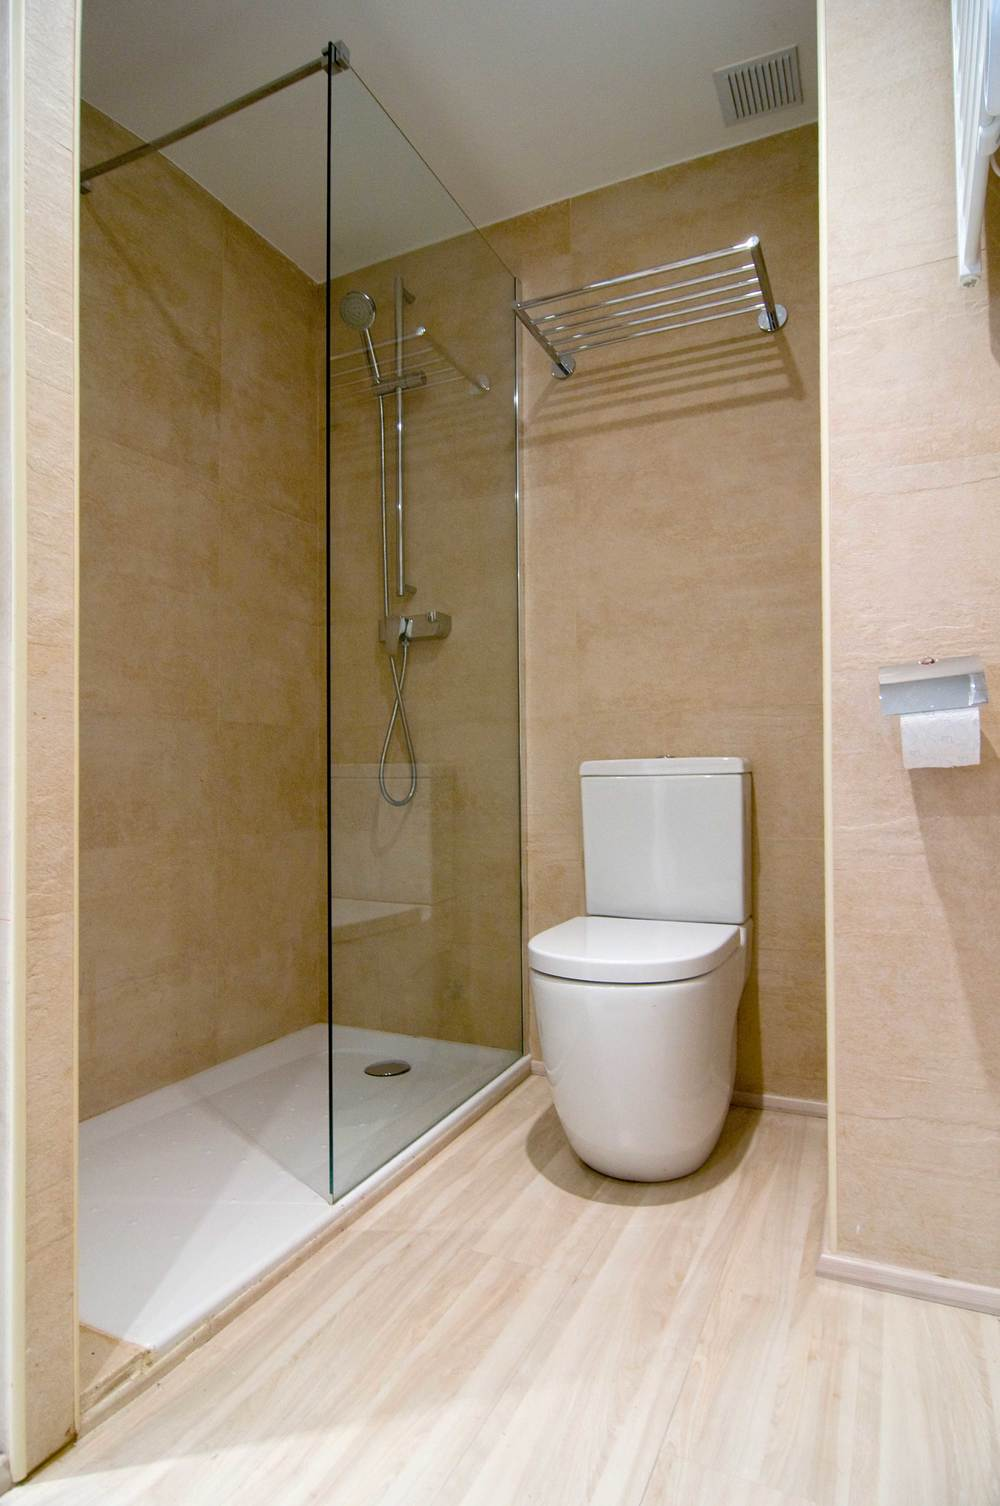 Cerdanya_Llivia_homerenovation_shower.jpg